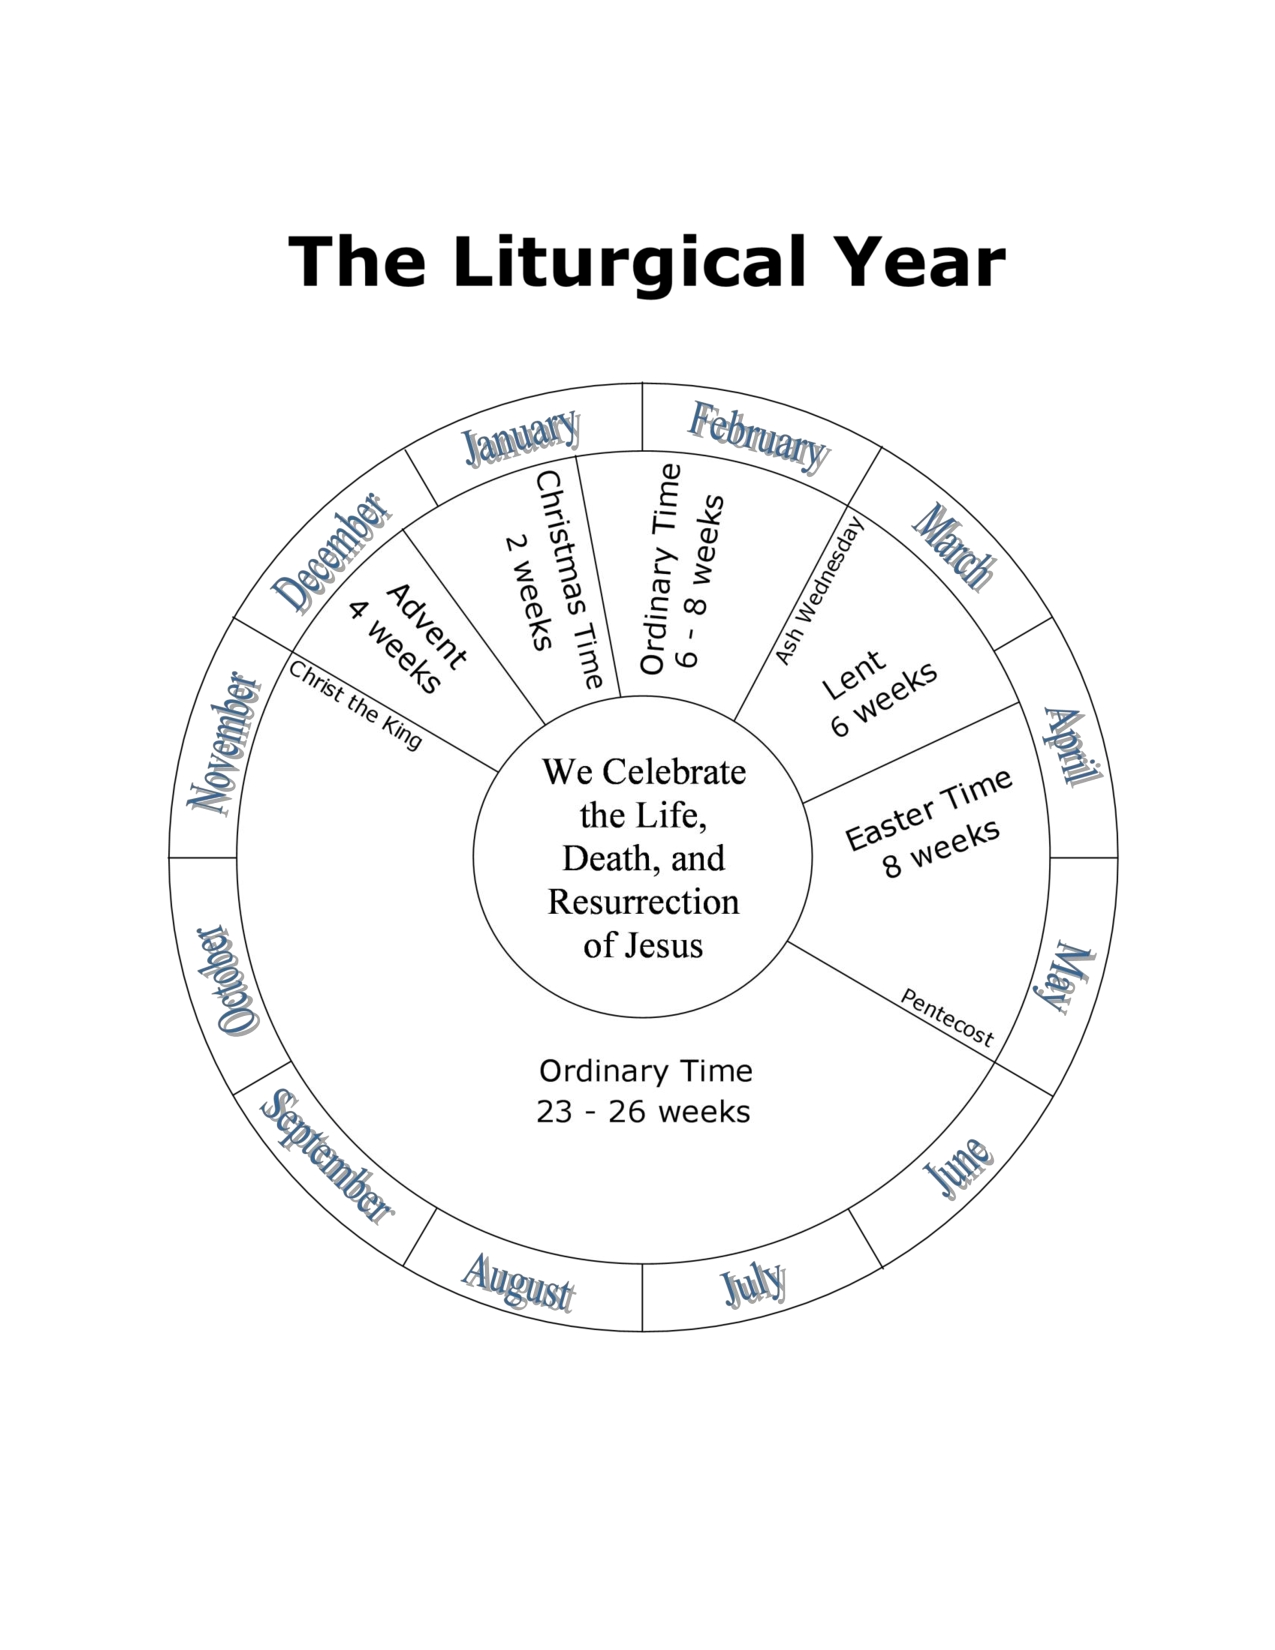 1000 Images About Church Calendar On Pinterest Pentecost The3abry